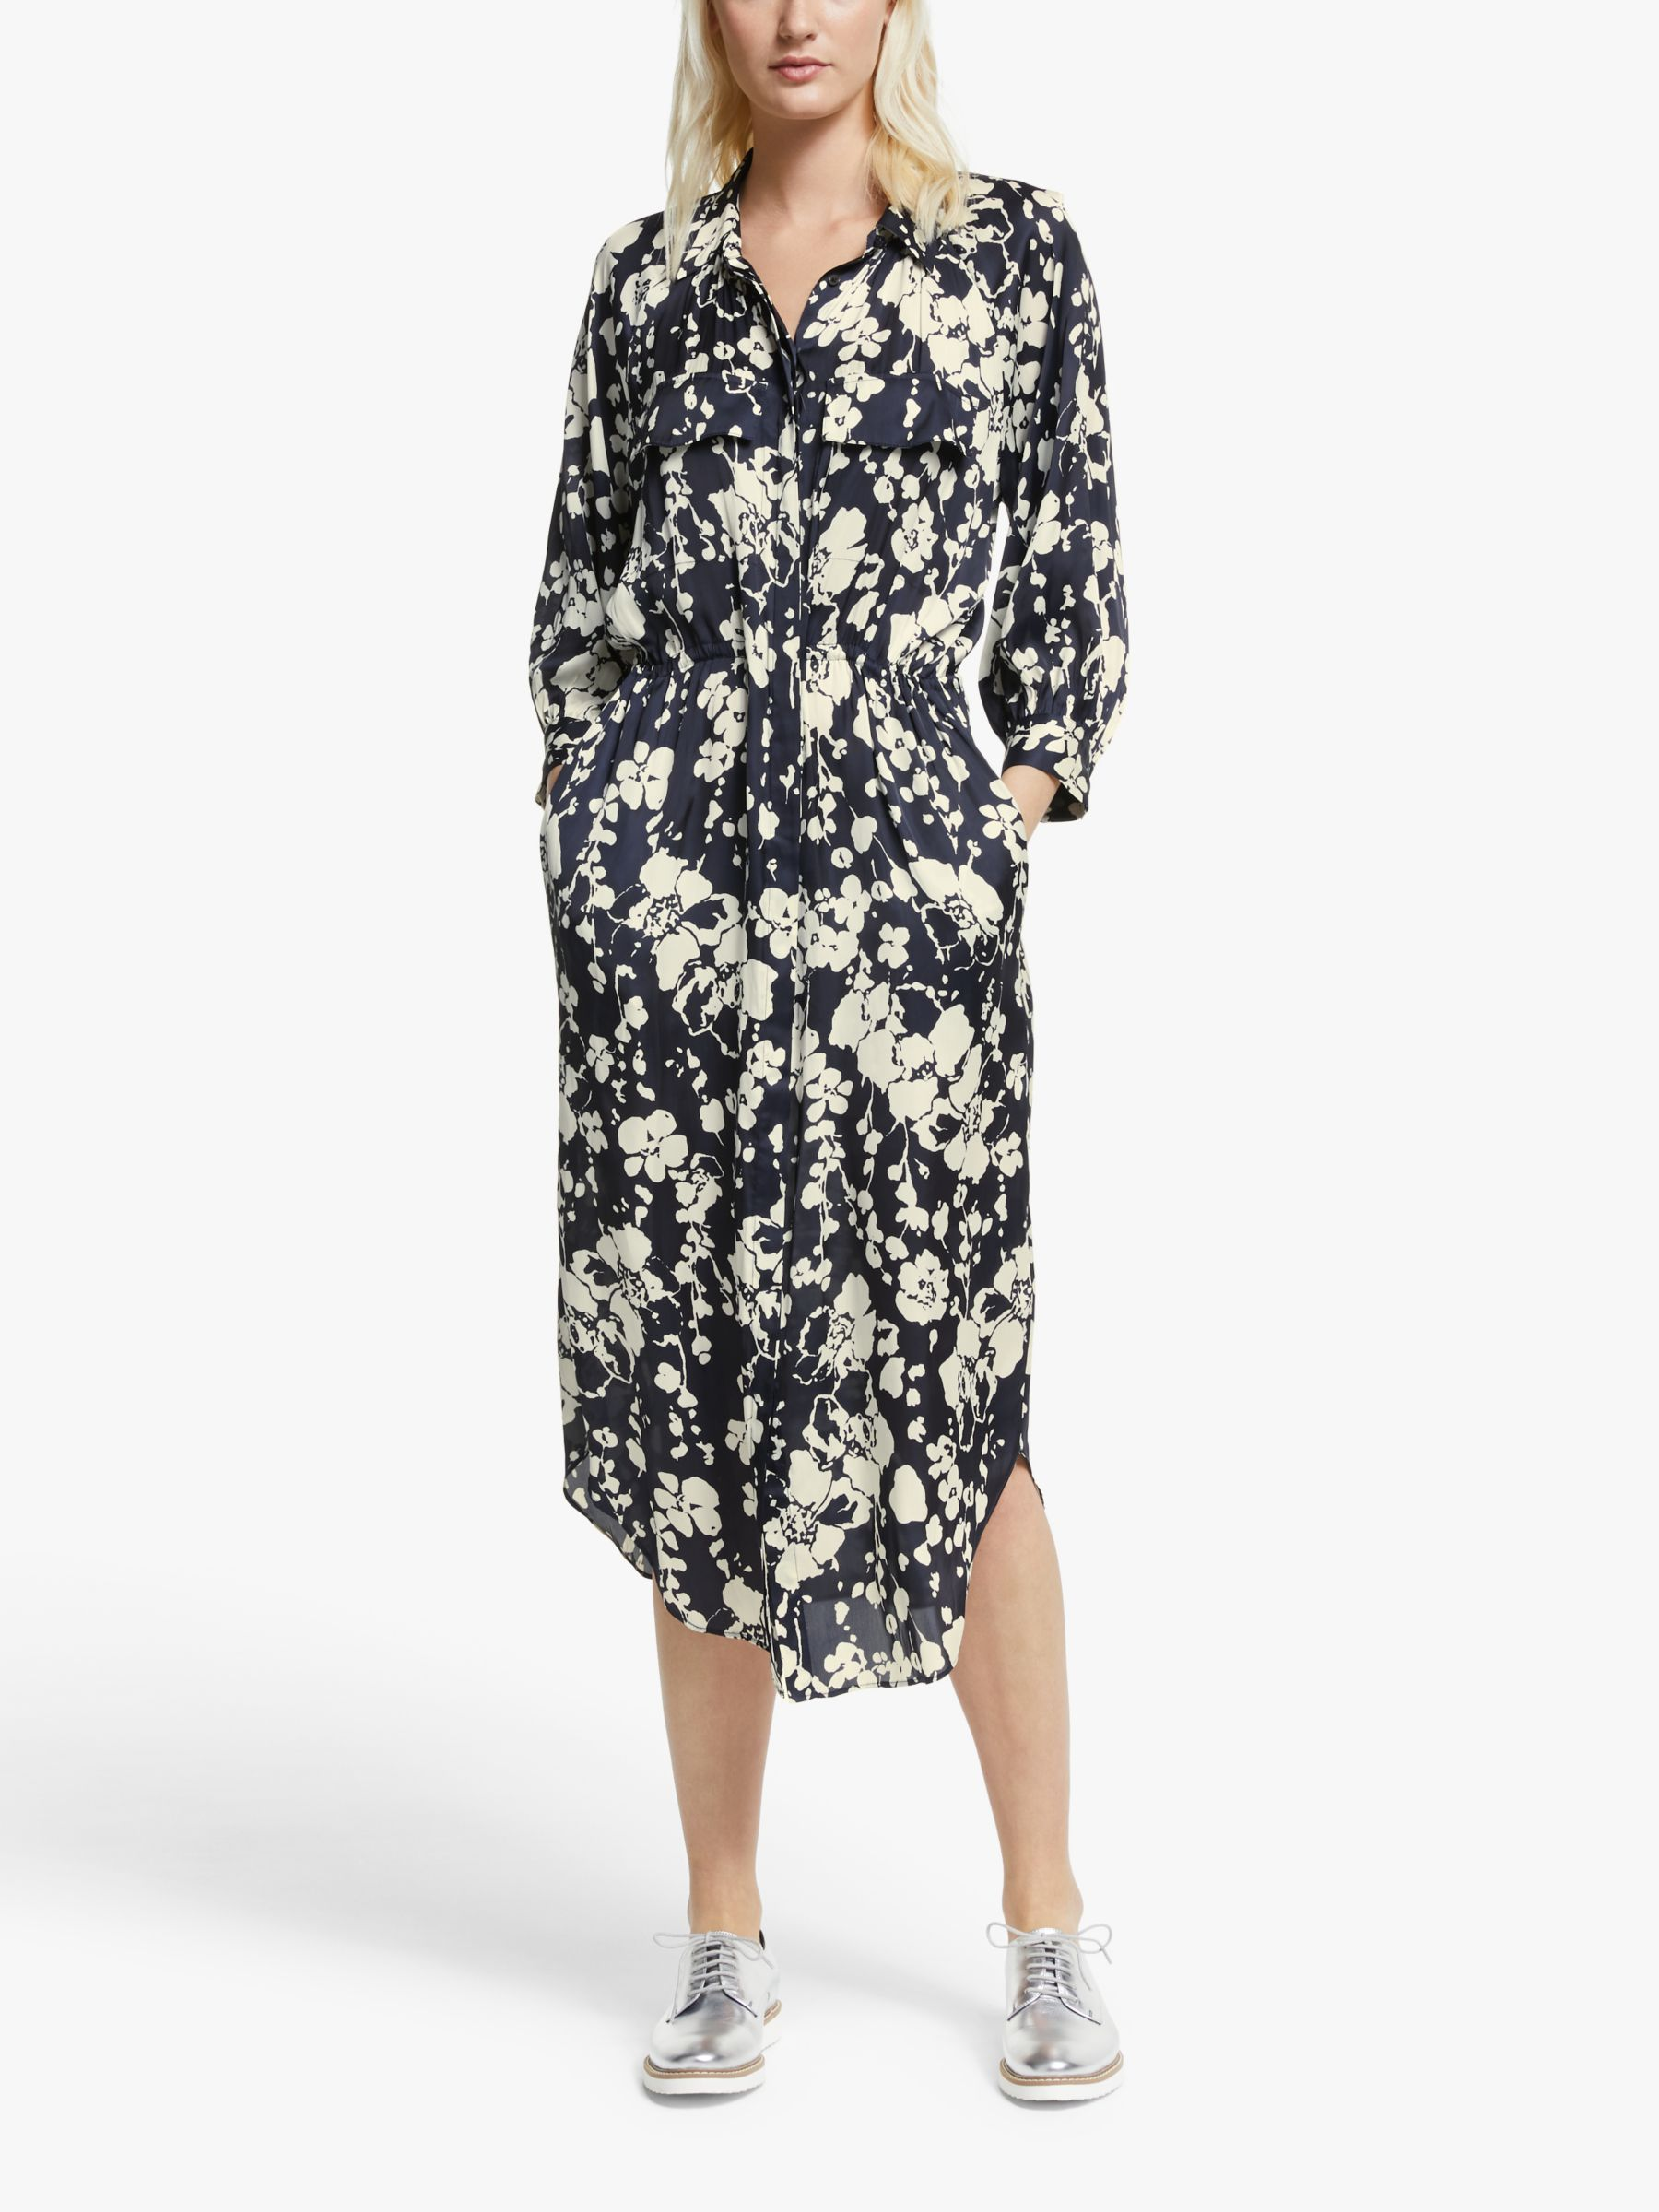 Joie Joie Emmalynn Floral Midi Dress, Midnight